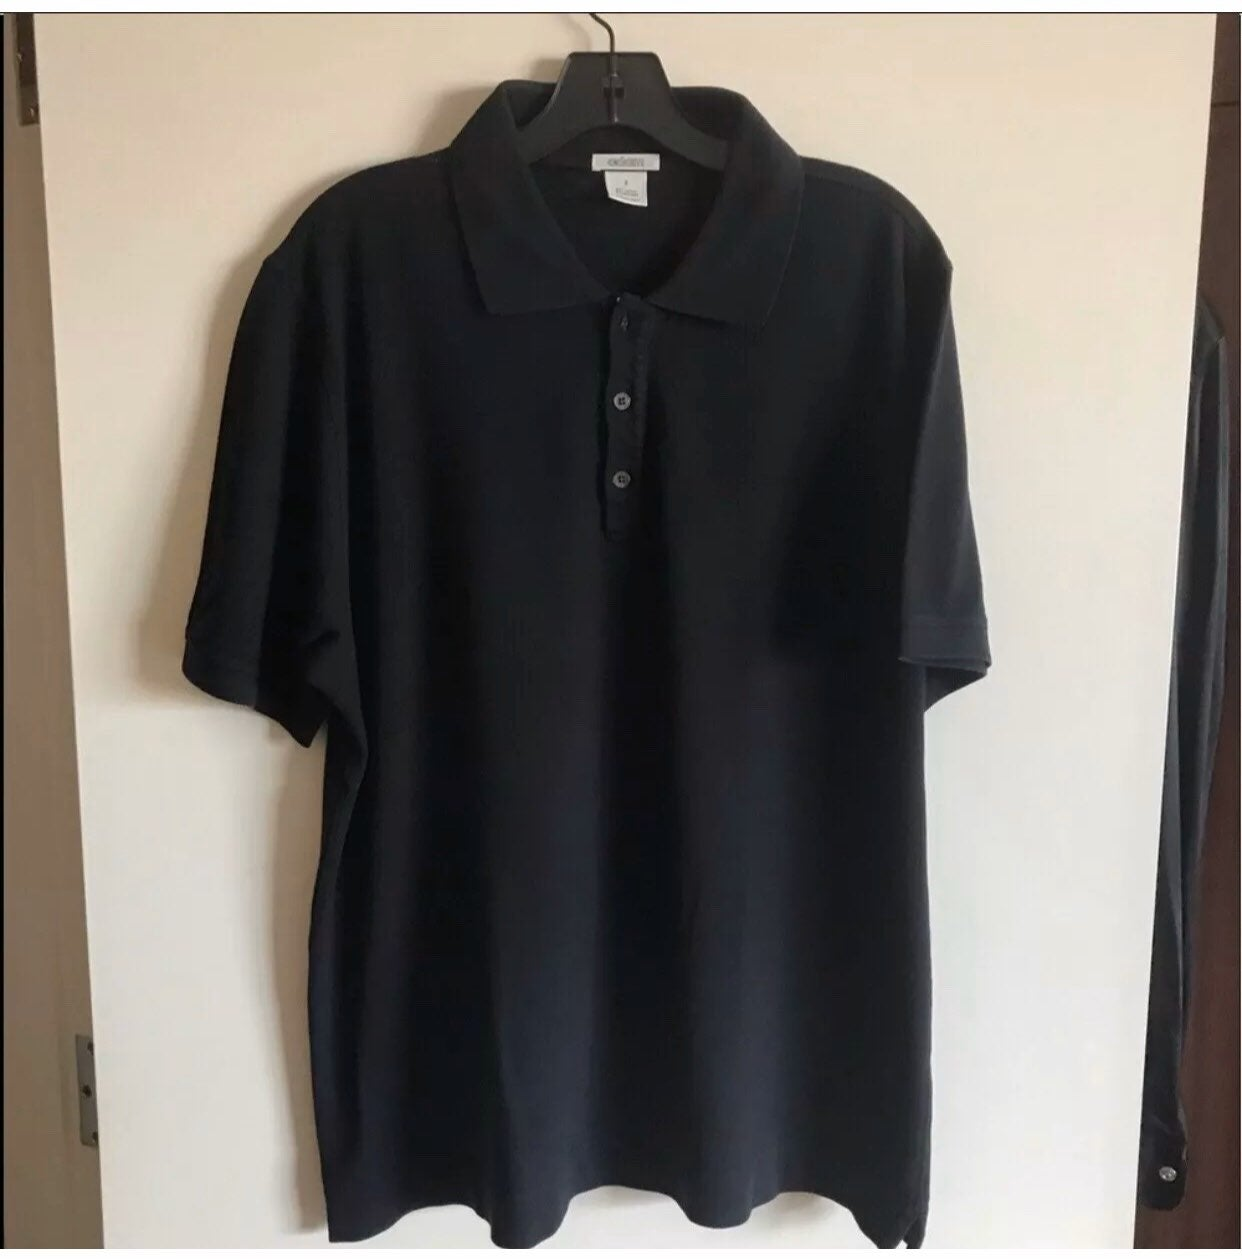 ADAM men's Polo Cotton Shirt s 4 fits XL